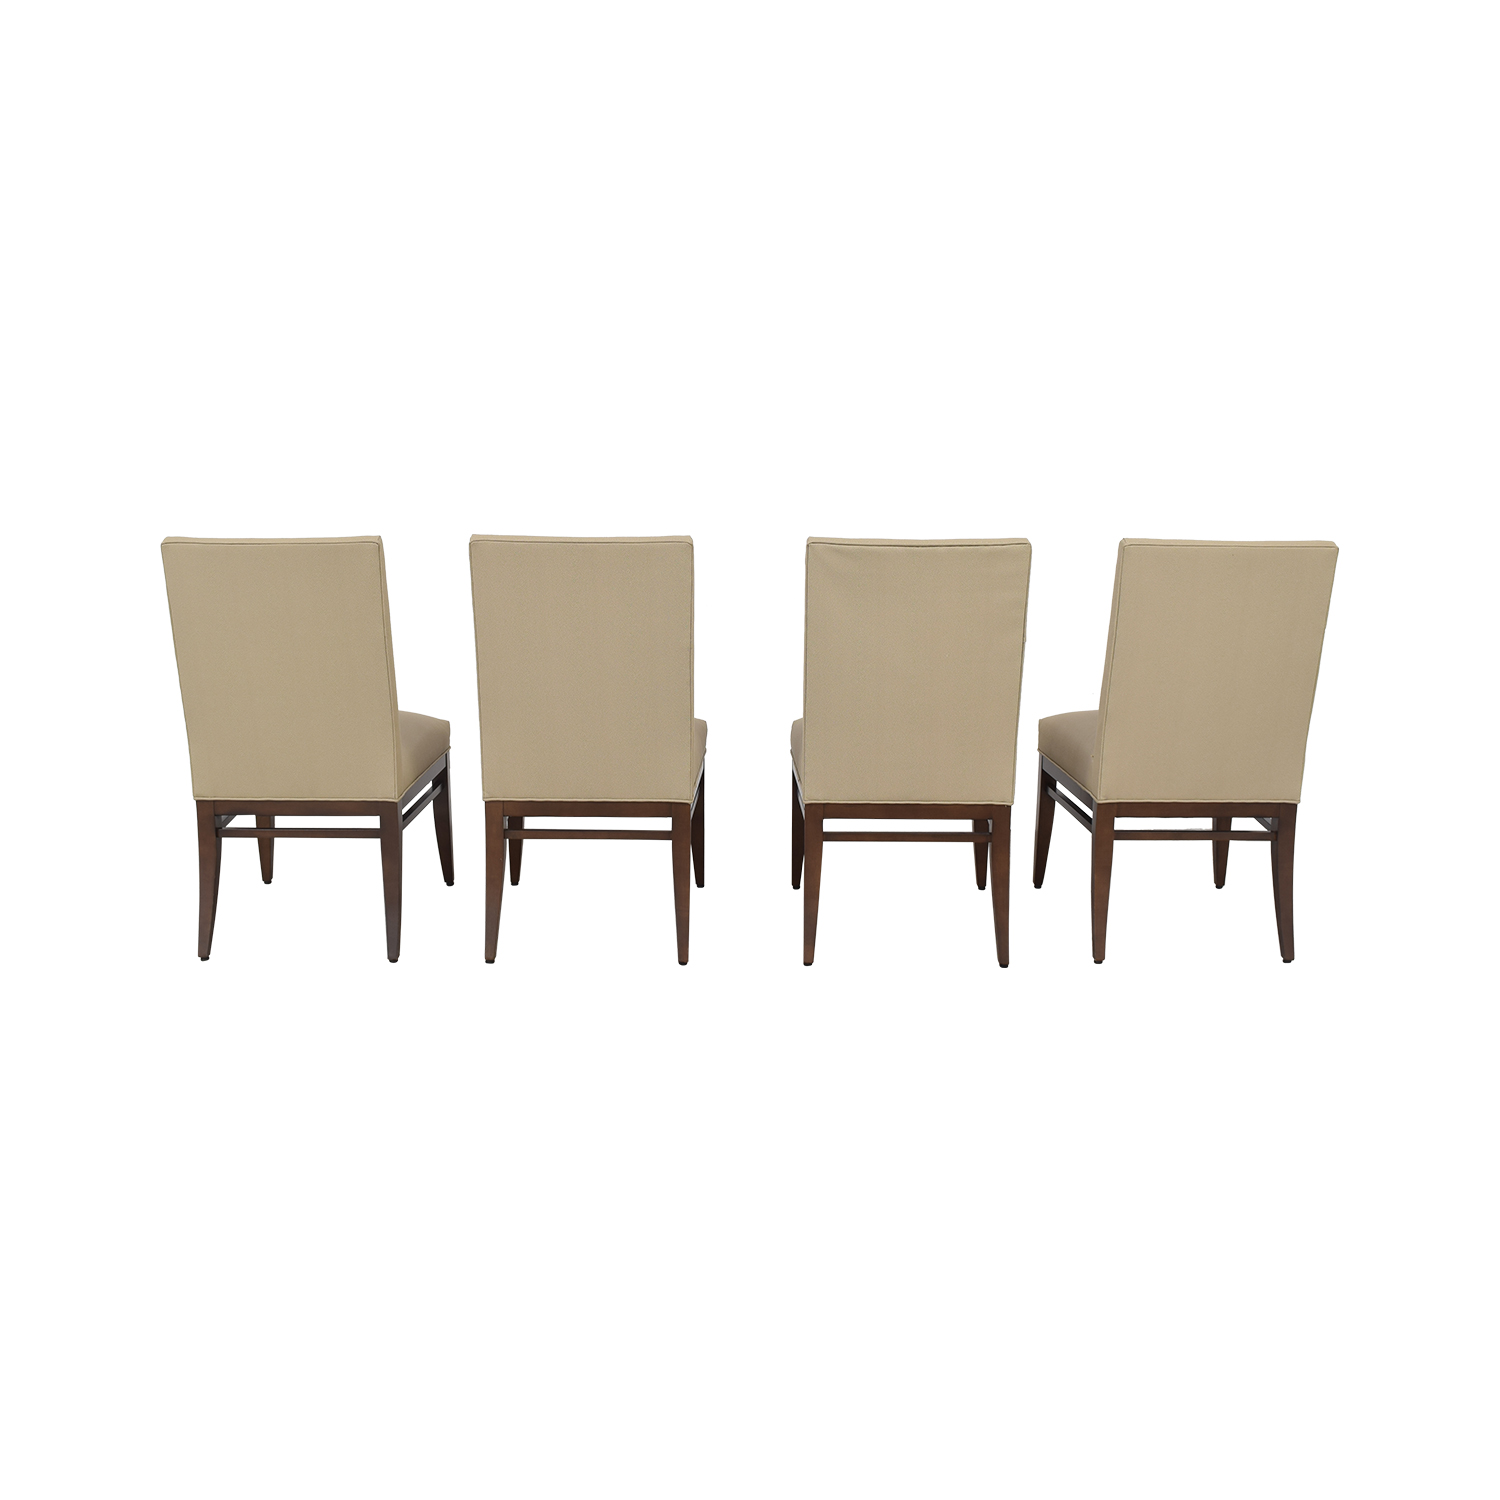 Duralee Kent Upholstered Dining Chairs Duralee